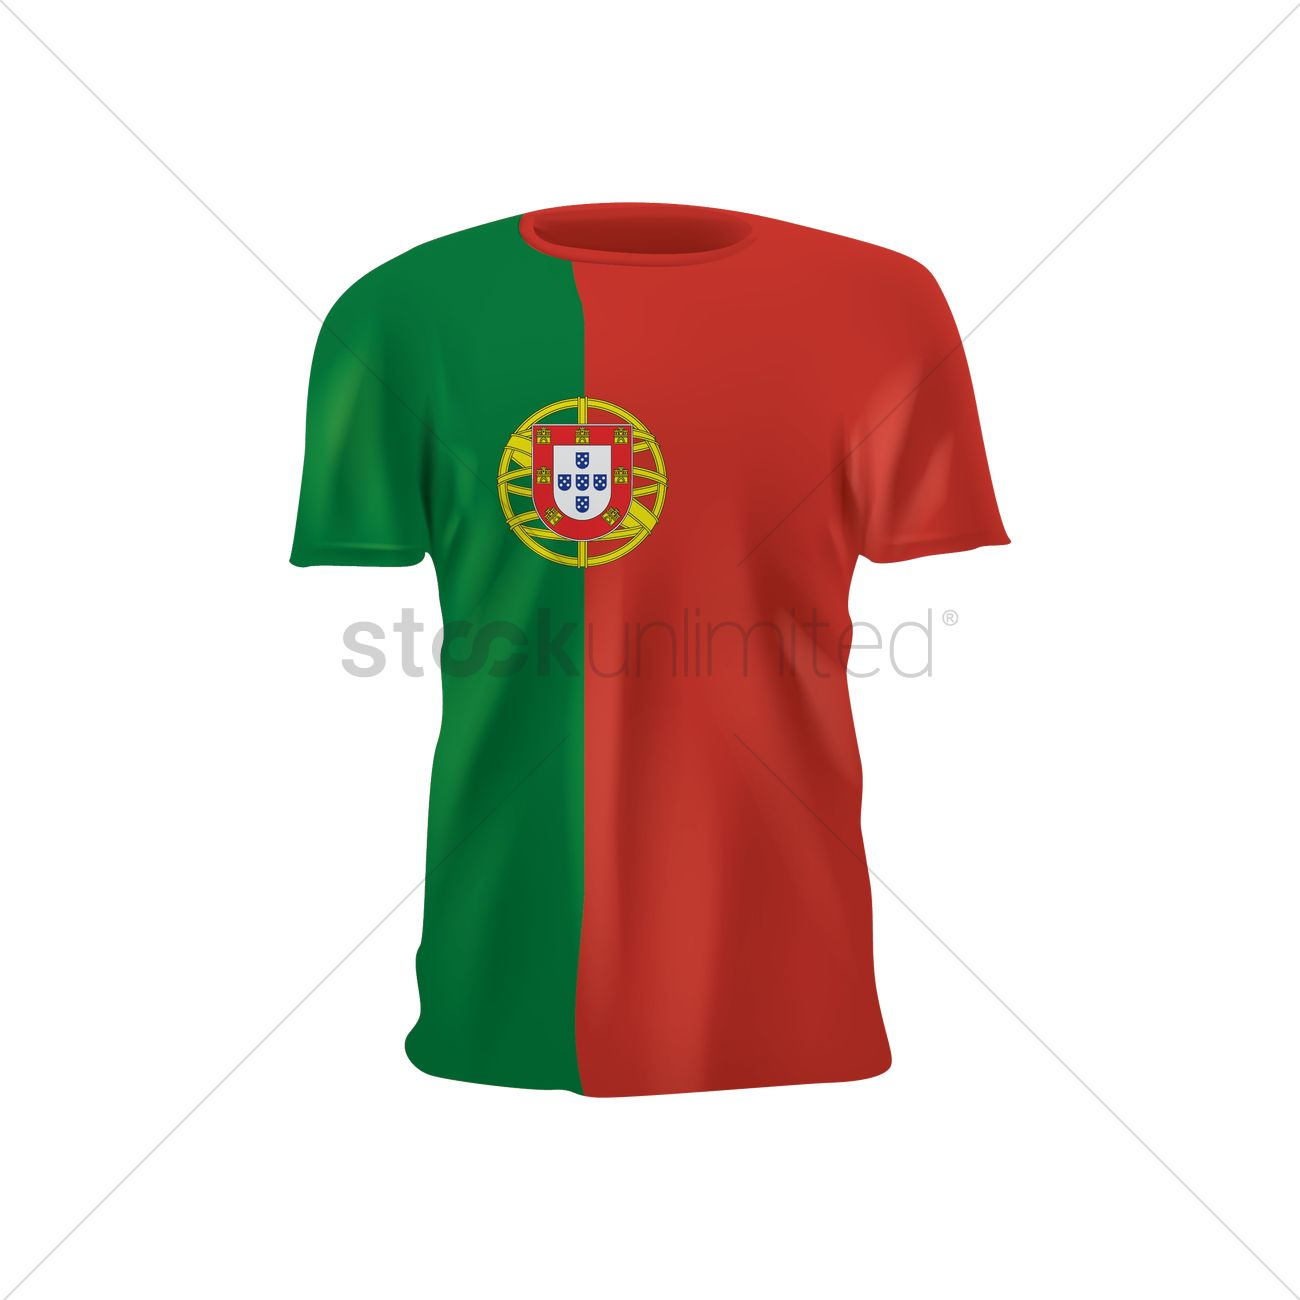 50837e42949 Portugal soccer jersey Vector Image - 1818908 | StockUnlimited